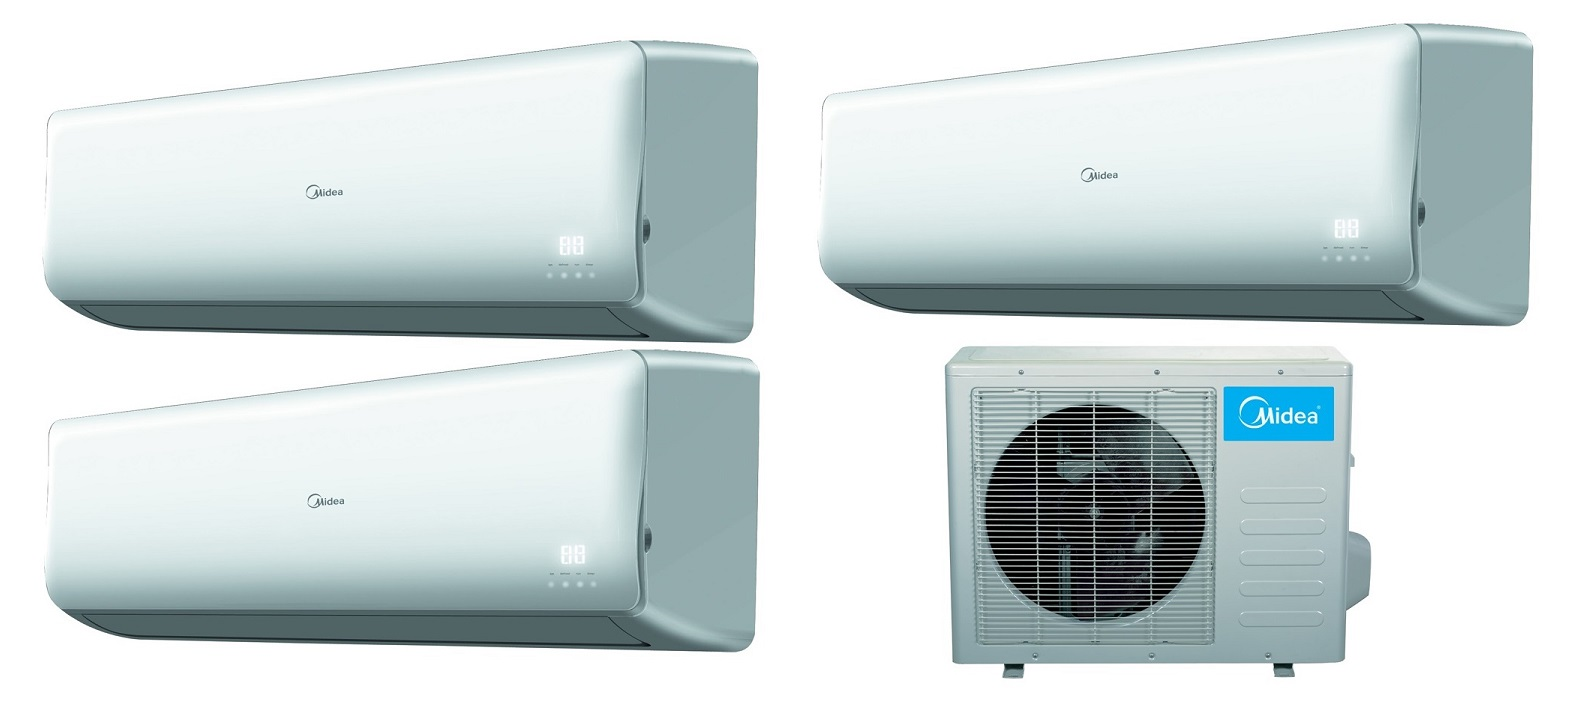 Midea 16 Seer 3 Room 3x9000 Btu Tri Zone Mini Split Ac